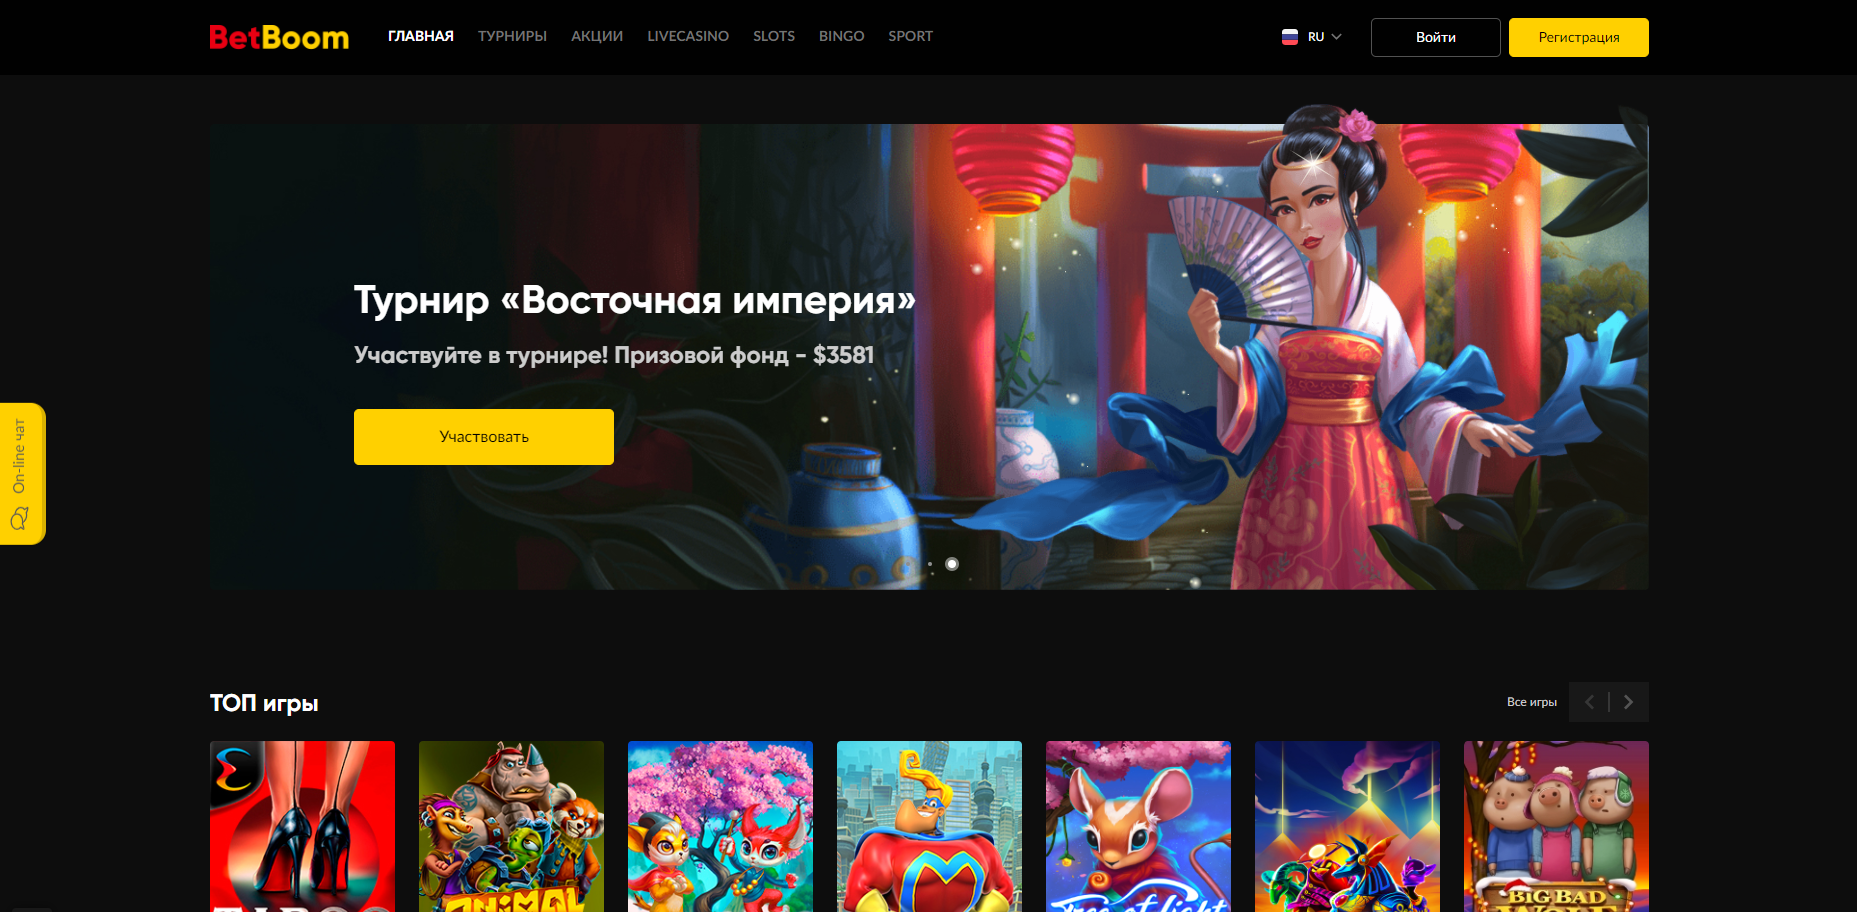 BetBoom Casino